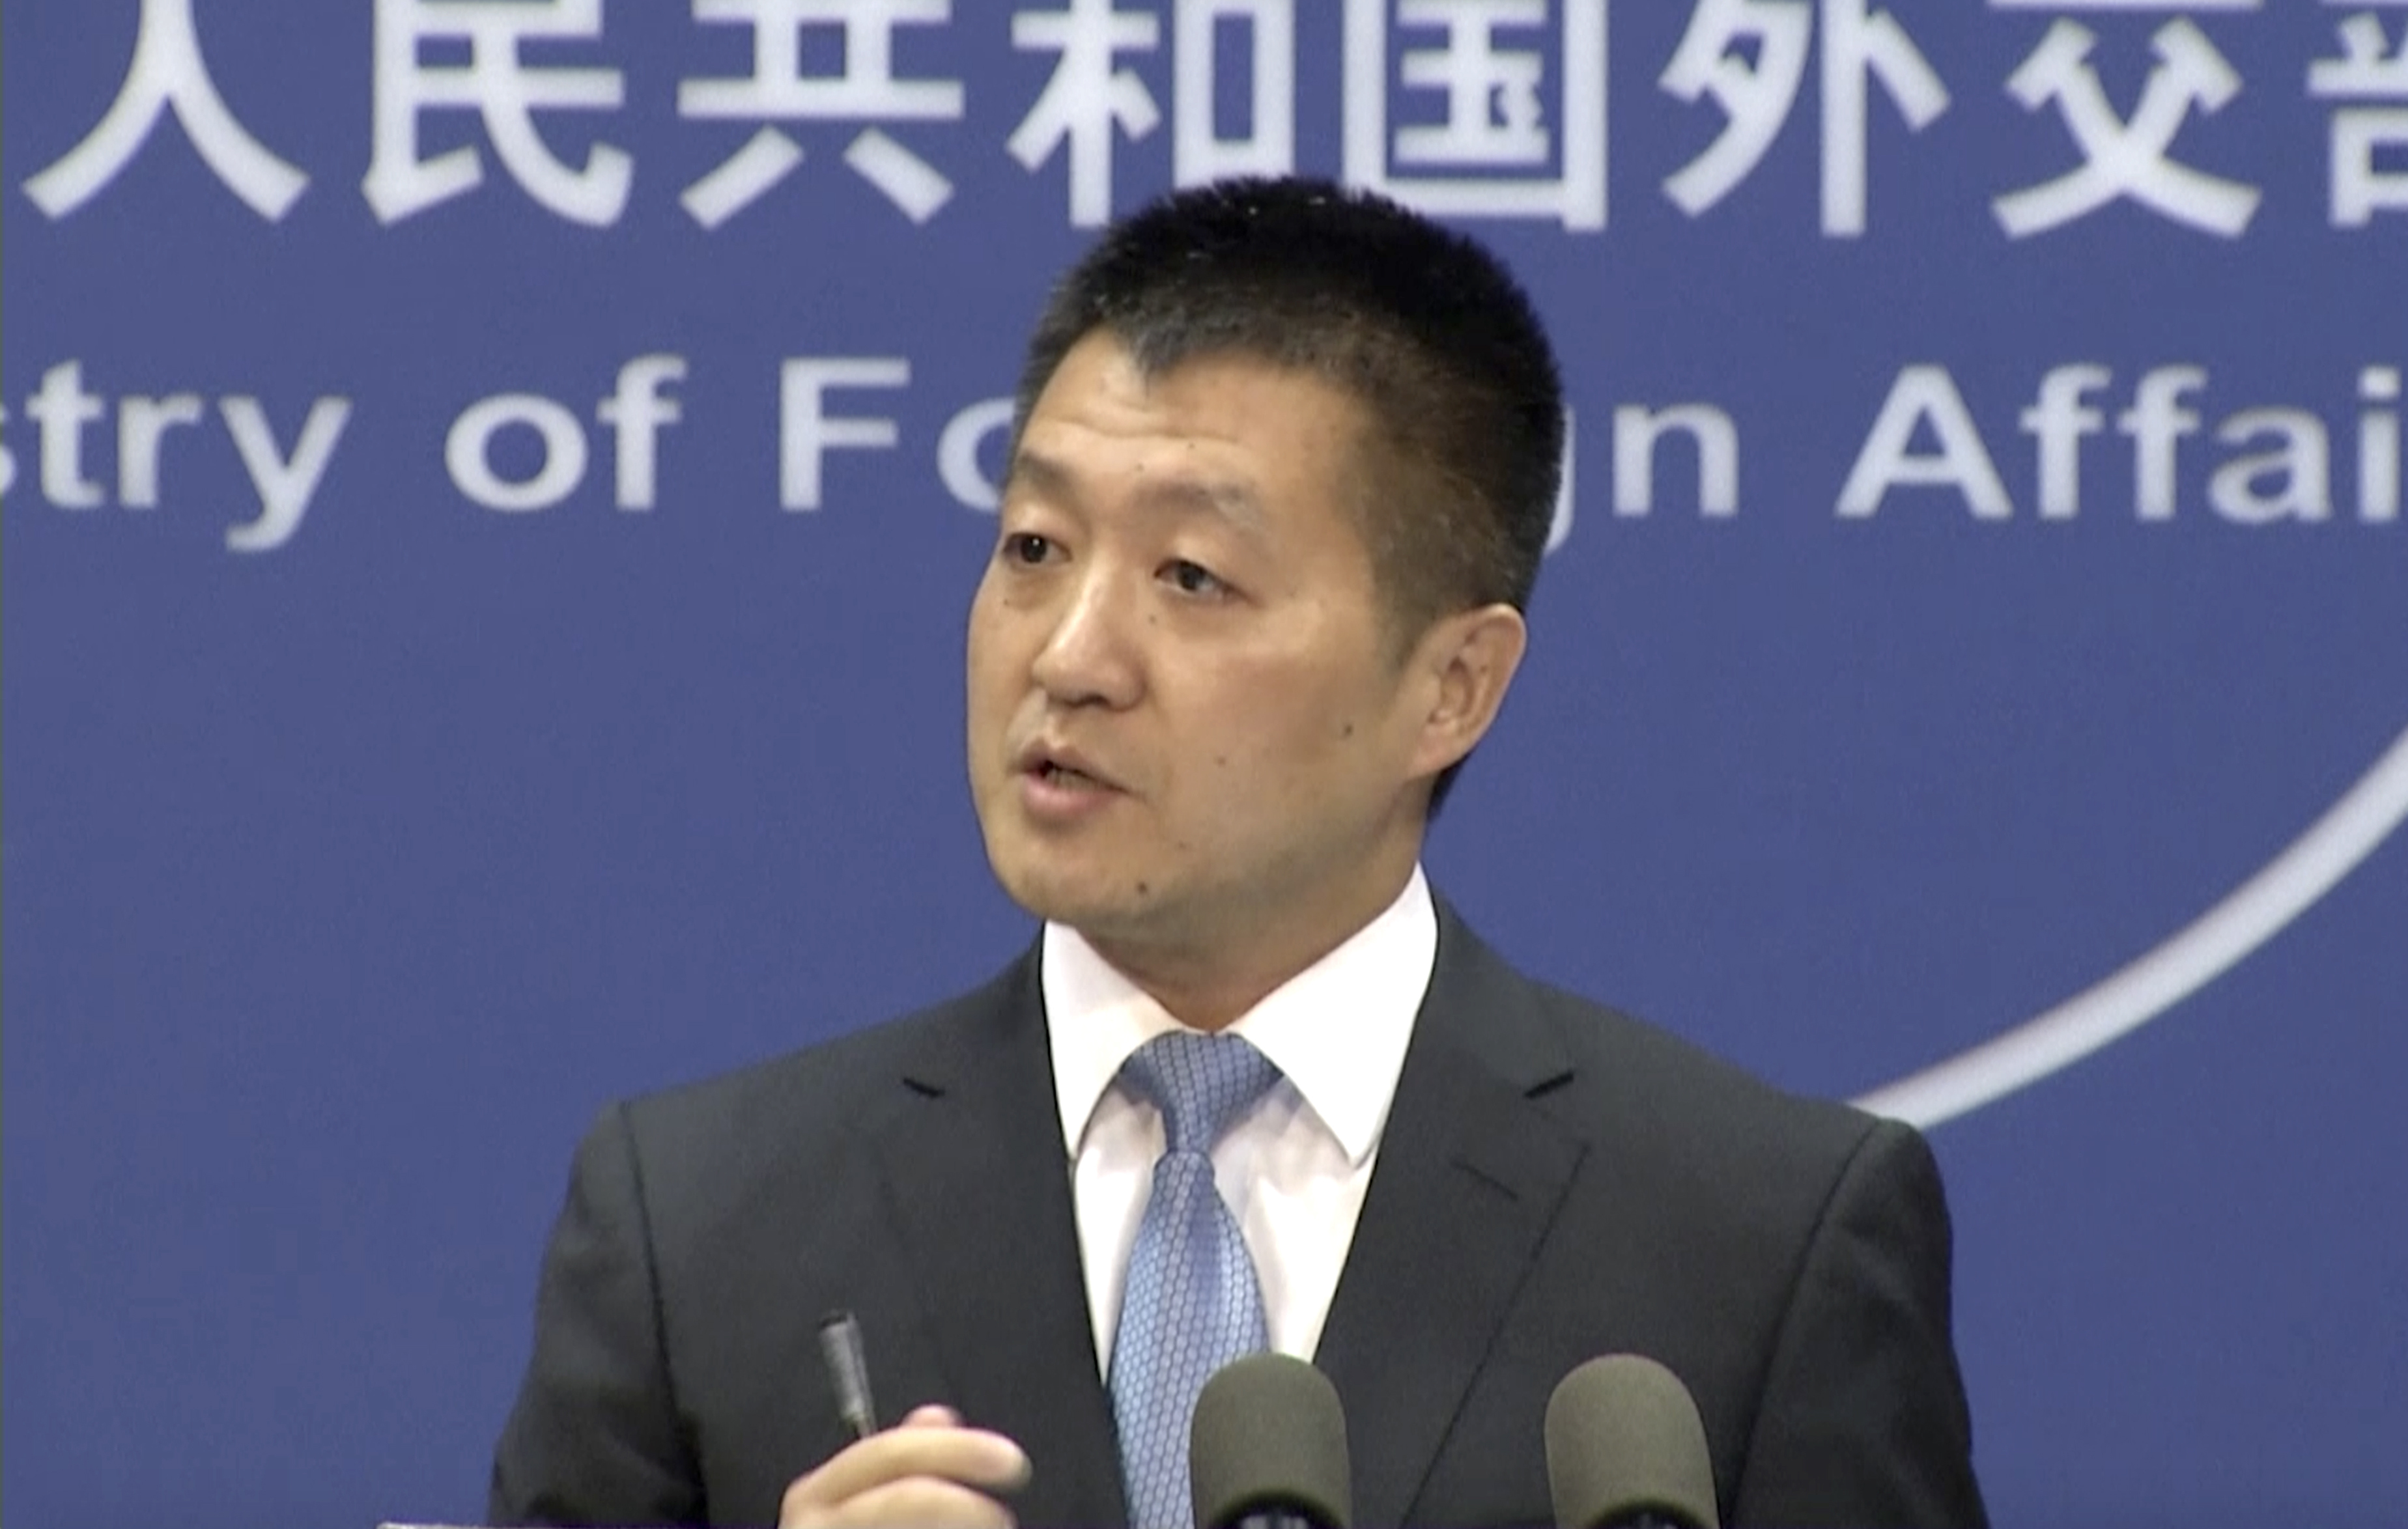 Lu Kang, spokesman of the Chinese Ministry of Foreign Affairs, speaks to reporters about the international tribunal's ruling on the South China Sea during a news briefing in Beijing, July 12, 2016.